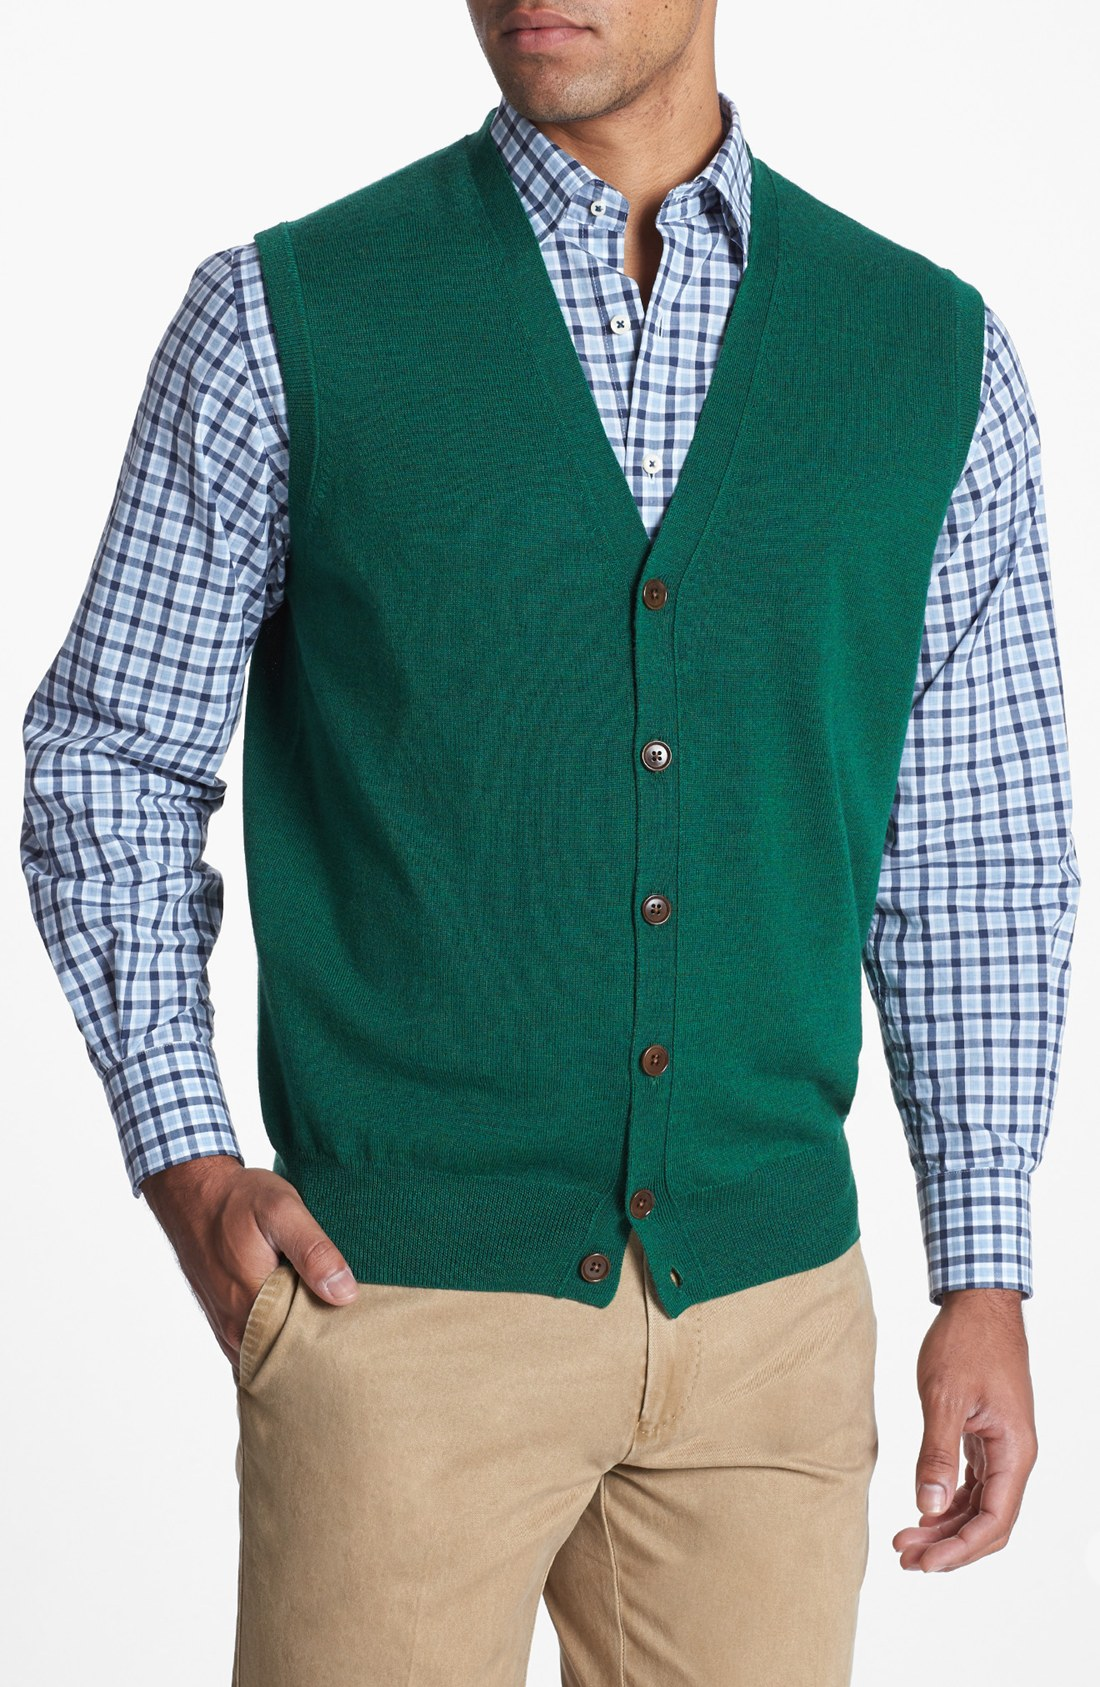 Shop online for Men's Cardigan Sweaters & Jackets at sofltappreciate.tk Find zip-front & button styles. Free Shipping. Free Returns. All the time. Skip navigation. Give the card that gives! Vest; Zip Up; Show Fit. Extra Slim Fit Slim Fit Regular Fit Classic Fit. Show Material.